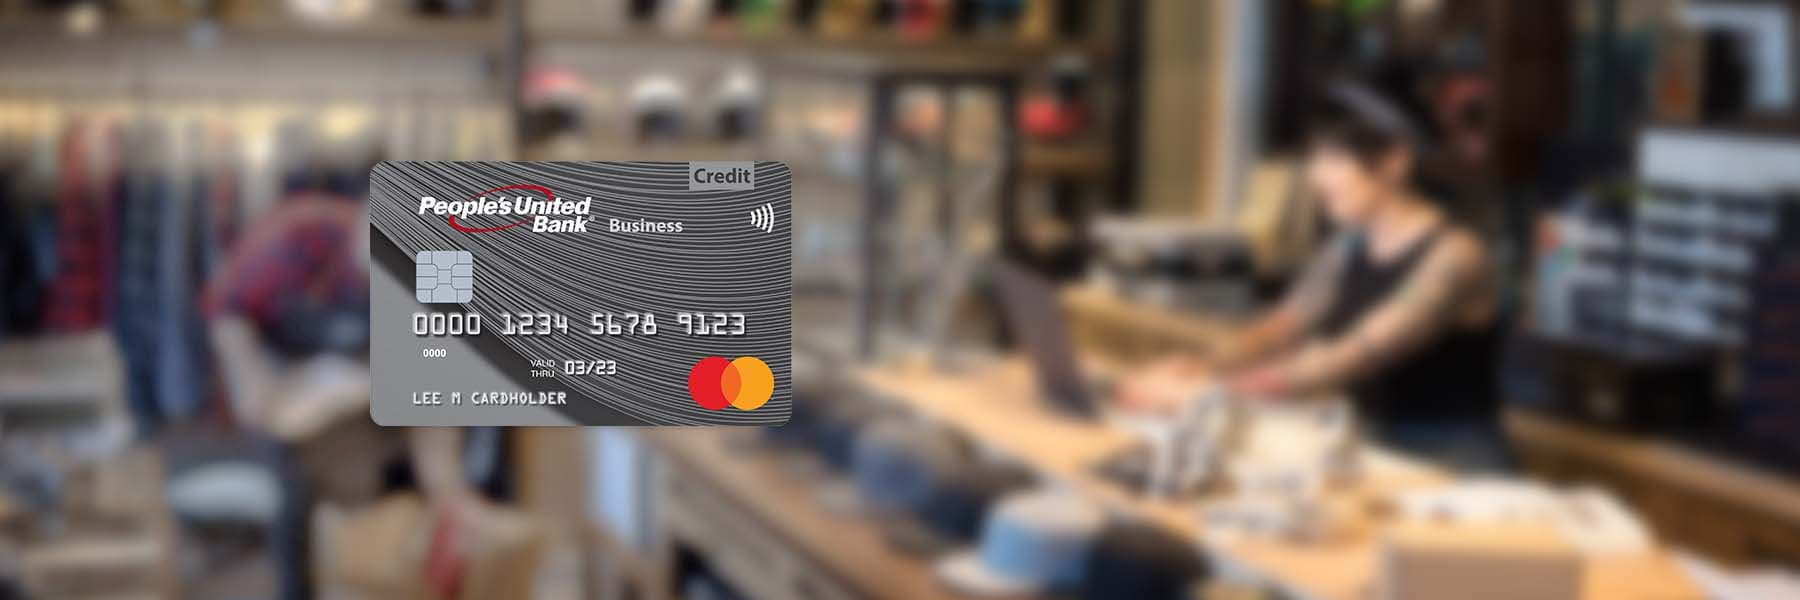 People's United Bank MasterCard business credit card on top of a blurred image of workers in a retail biker accessories, helmets and hats shop.